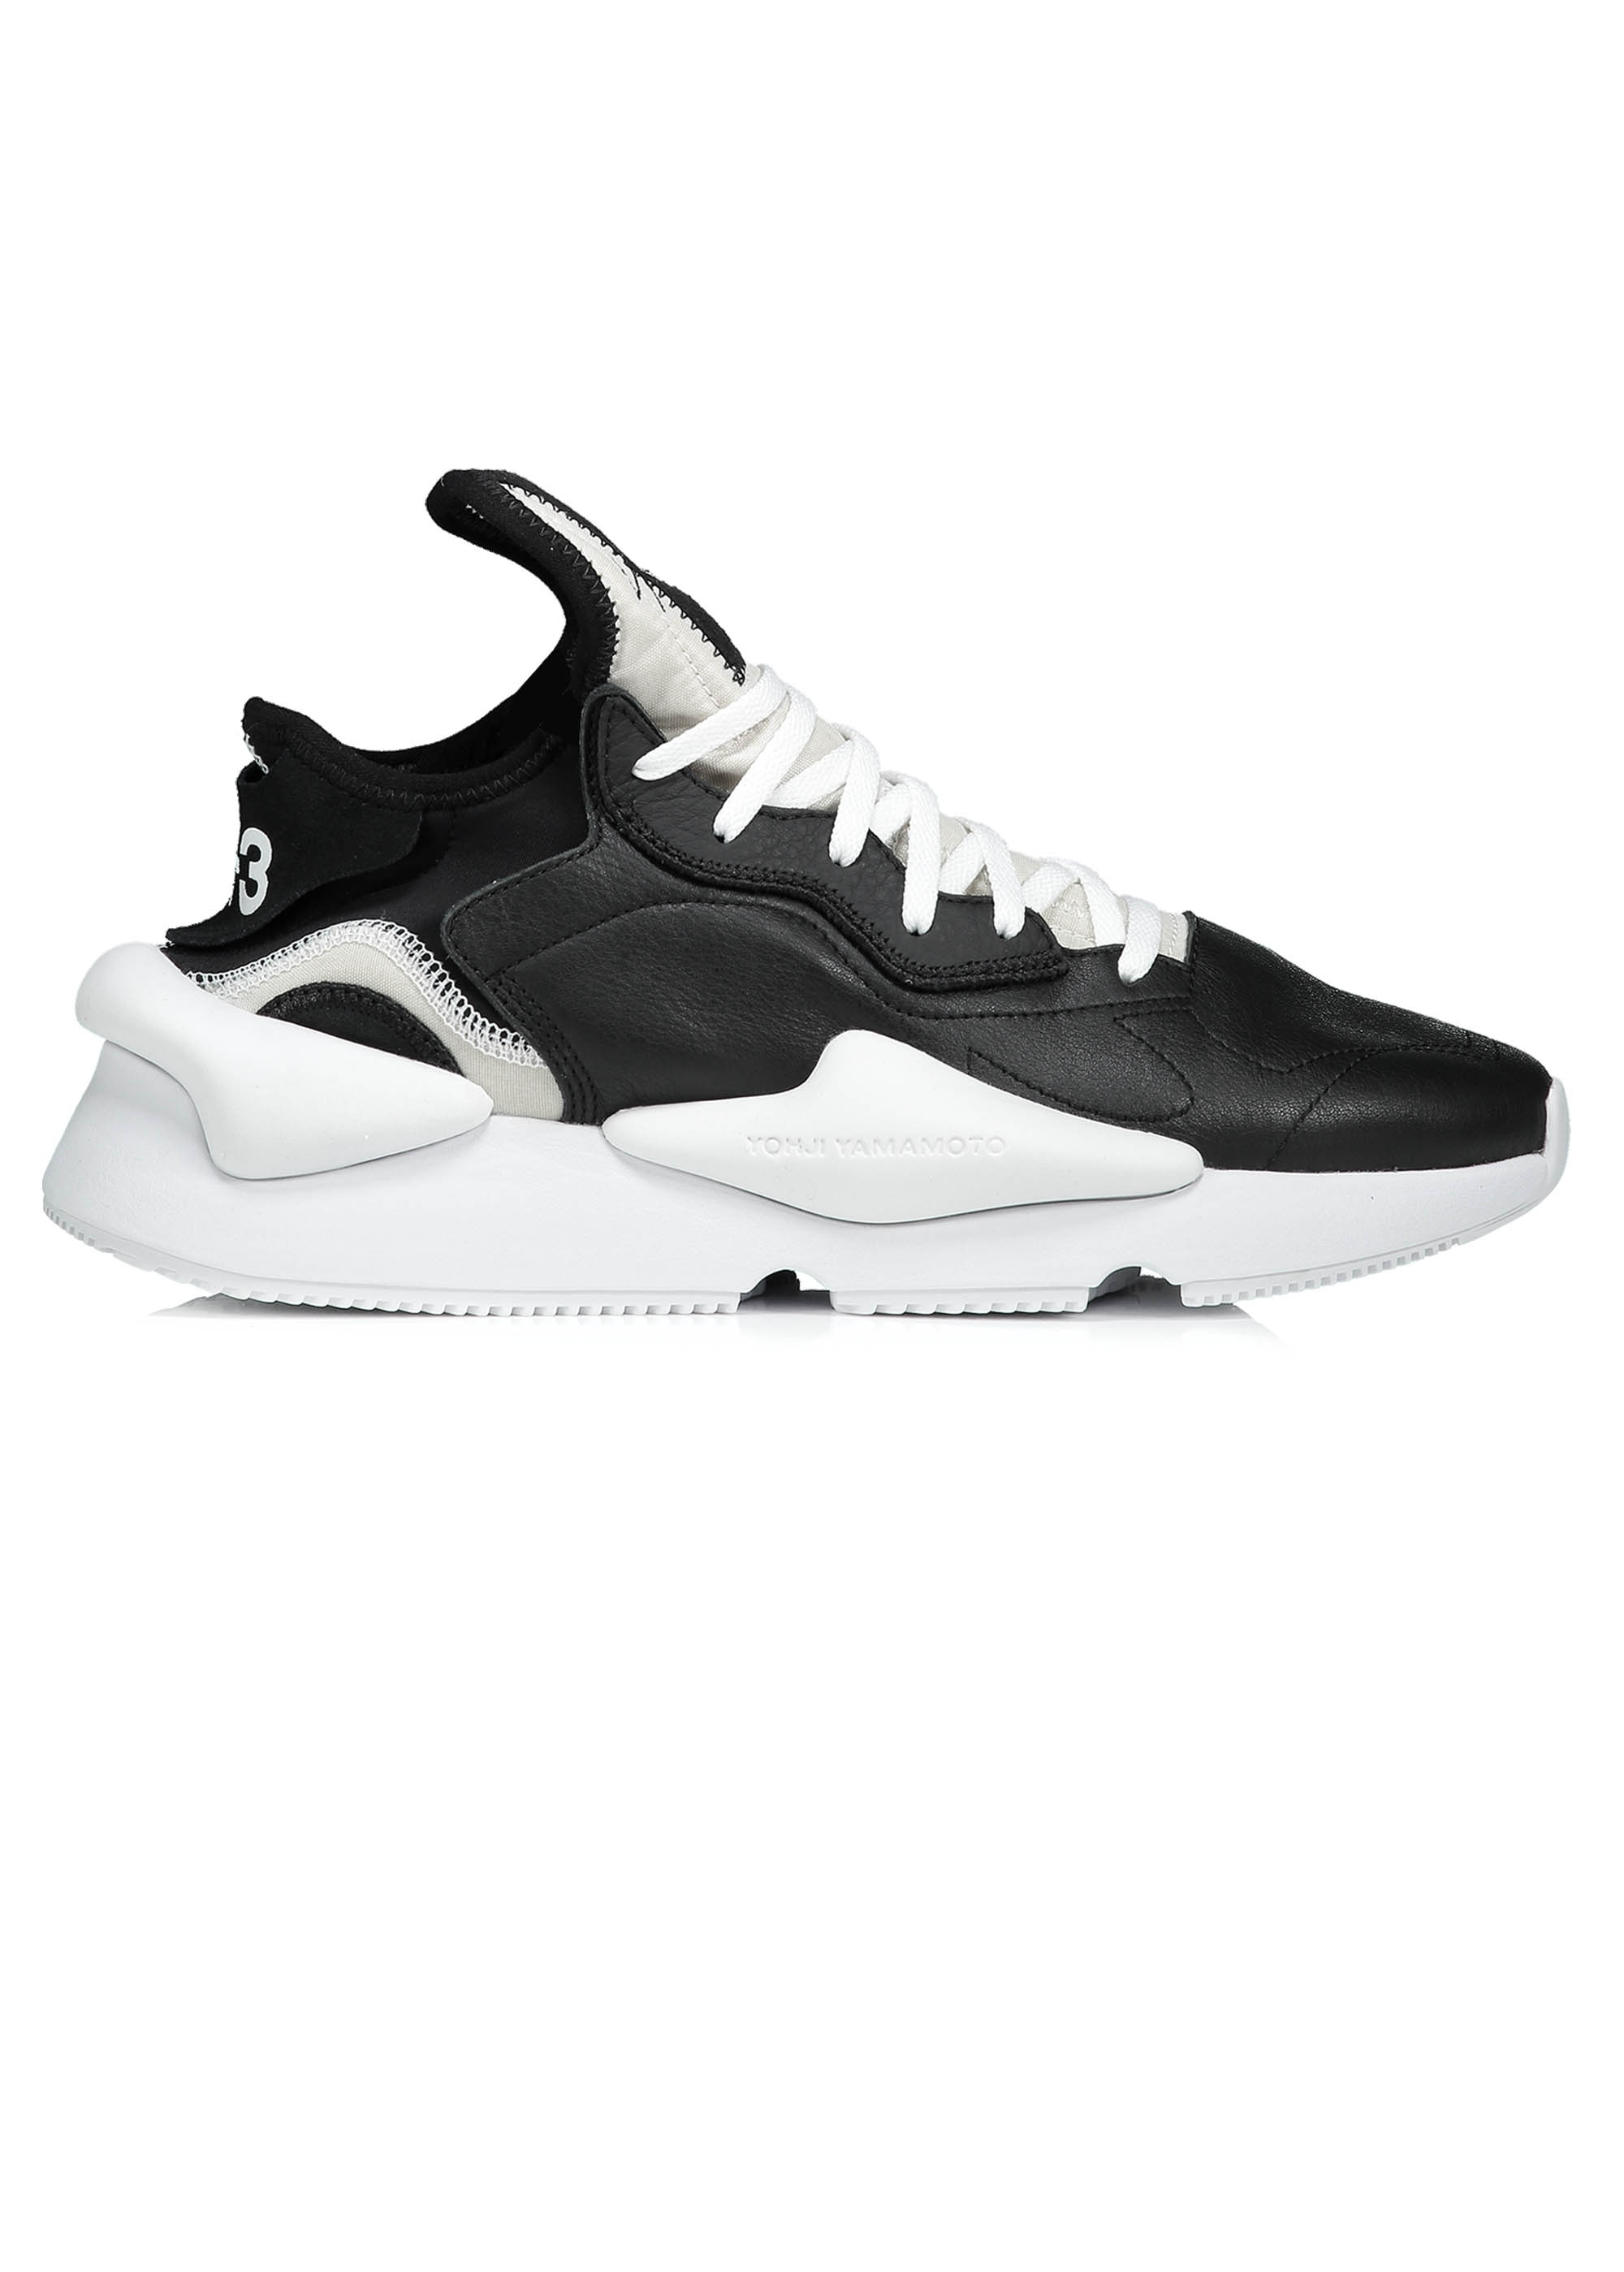 bf282bb25 ... Y3   adidas - Yohji Yamamoto Kaiwa Trainers - Black   White. Tap image  to zoom. Kaiwa Trainers - Black   White. Kaiwa Trainers - Black   White